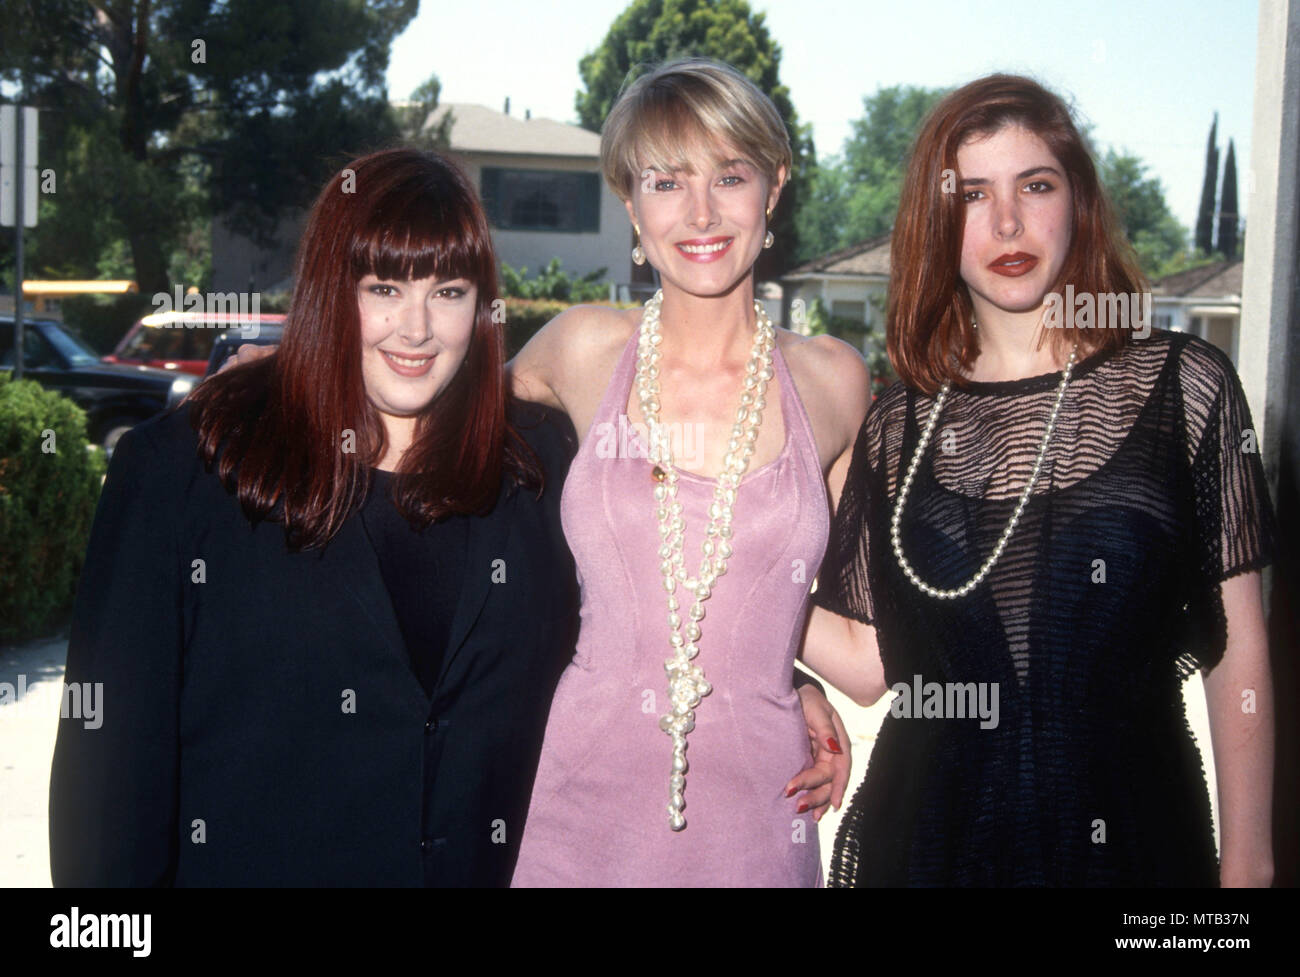 LOS ANGELES, CA - JUNE 3: (L-R) Singers Carnie Wilson, Chynna Phillips and Wendy Wilson of Music group Wilson Phillips attend event for National Sober Driving Campaign on June 3, 1991 in Los Angeles, California. Photo by Barry King/Alamy Stock Photo - Stock Image